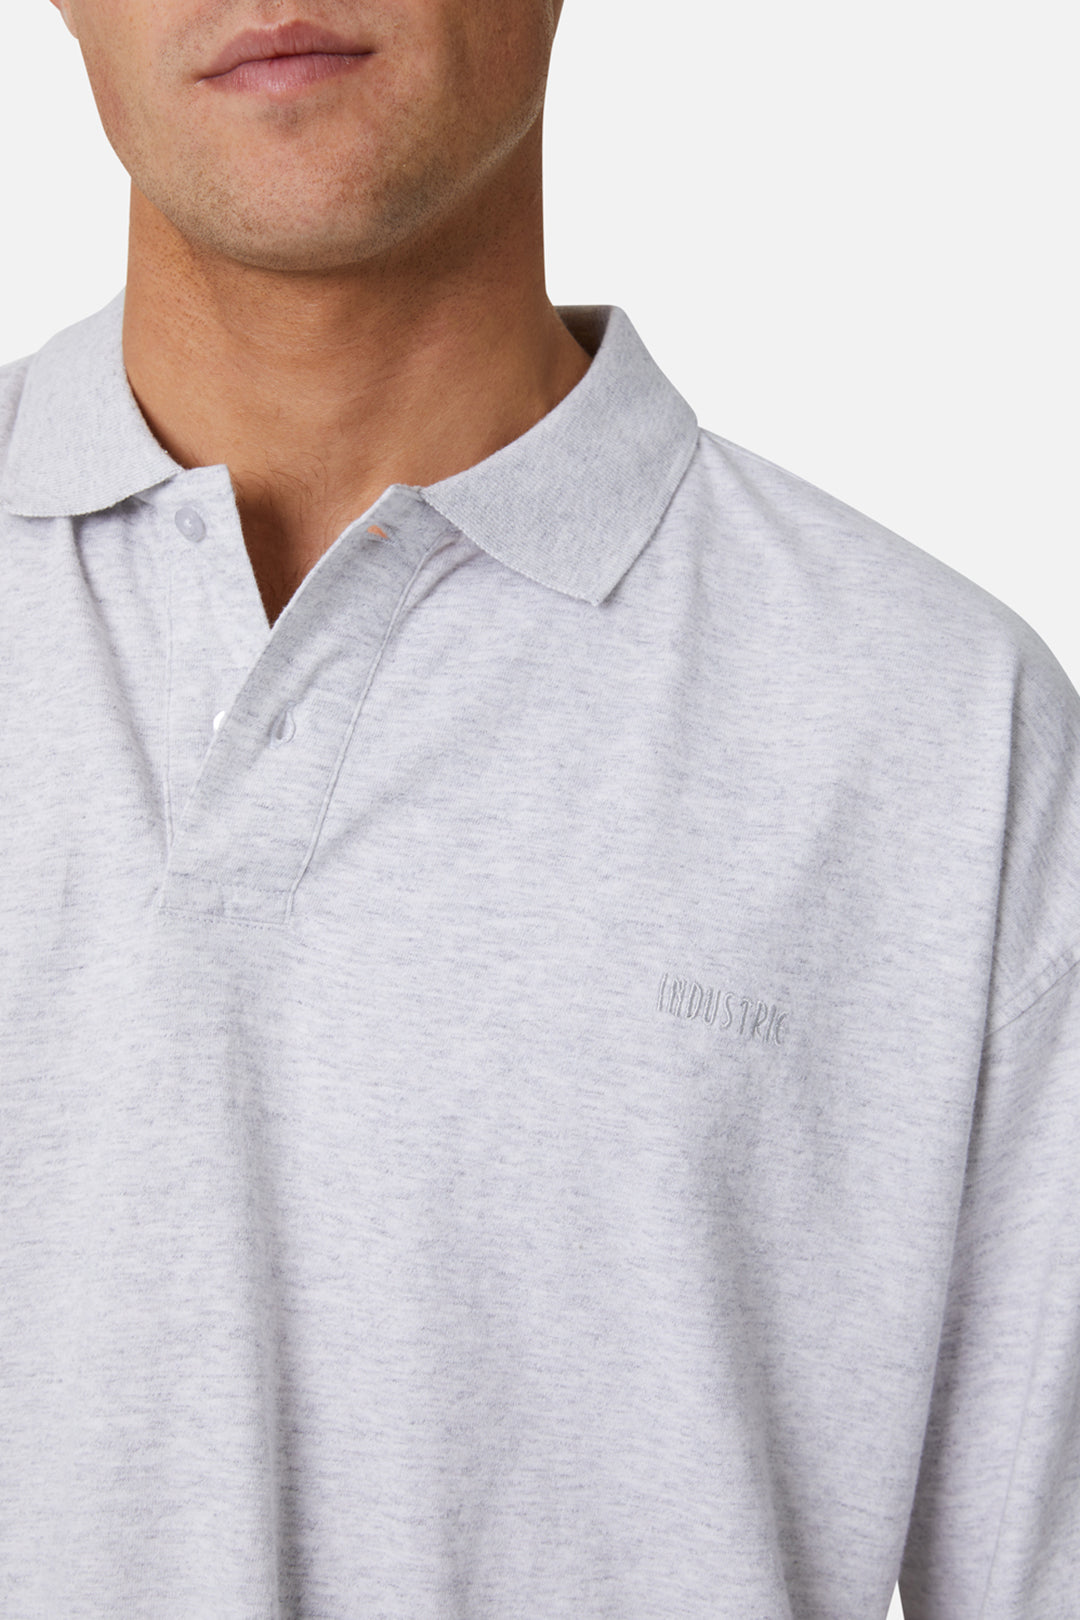 The Del Sur Polo - New Marle Grey